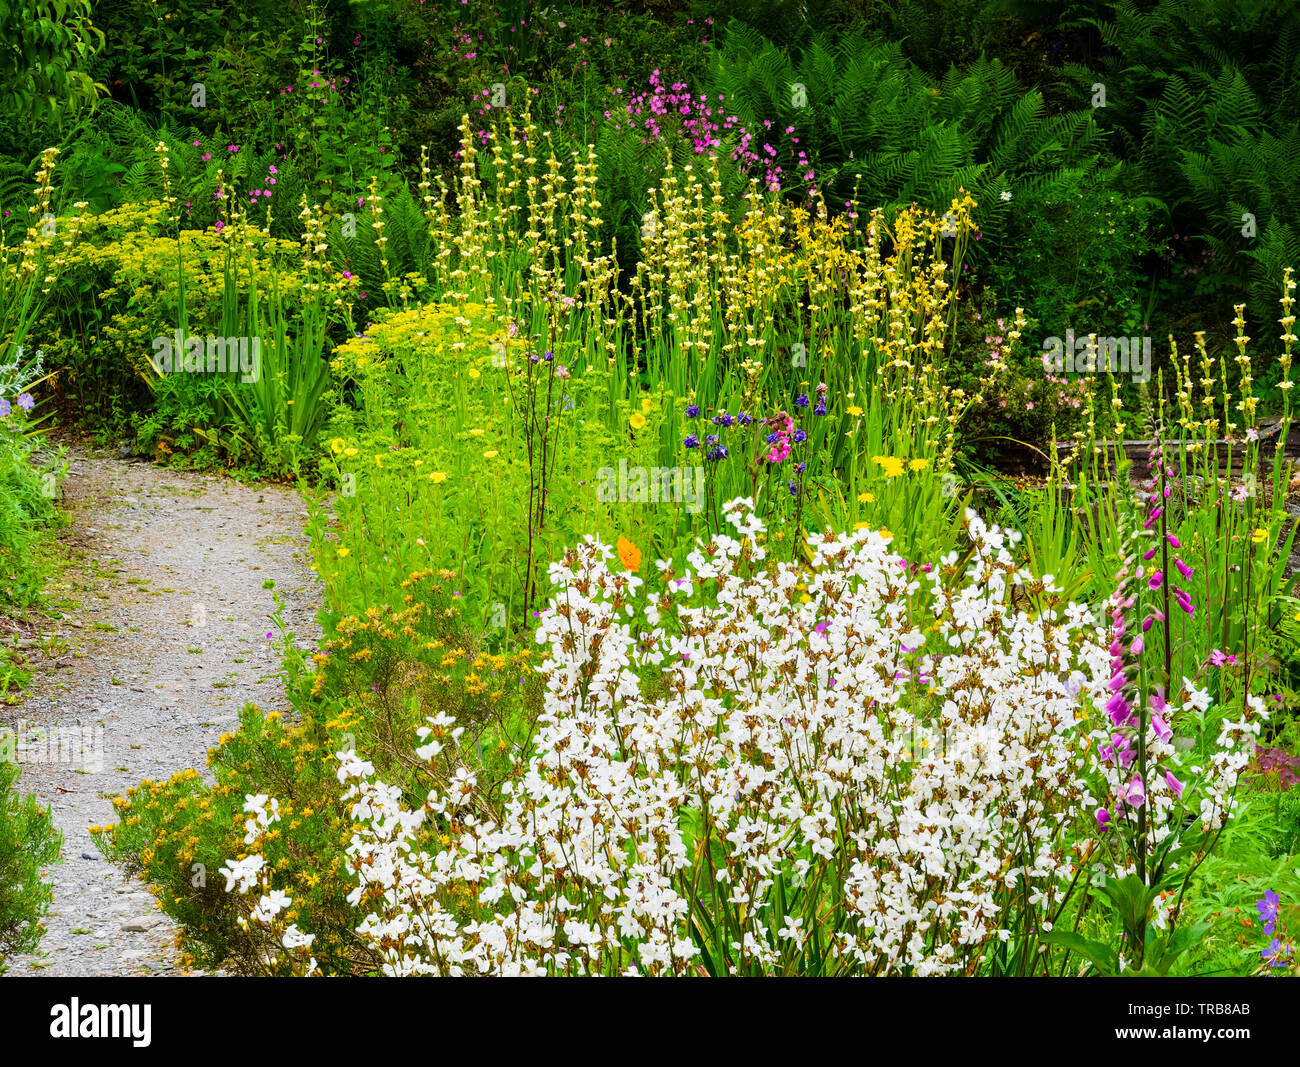 Early summer perennial planting combination dominated by the white spikes of Libertia formosa and yellow spikes of Sisyrinchium striatum - Stock Image